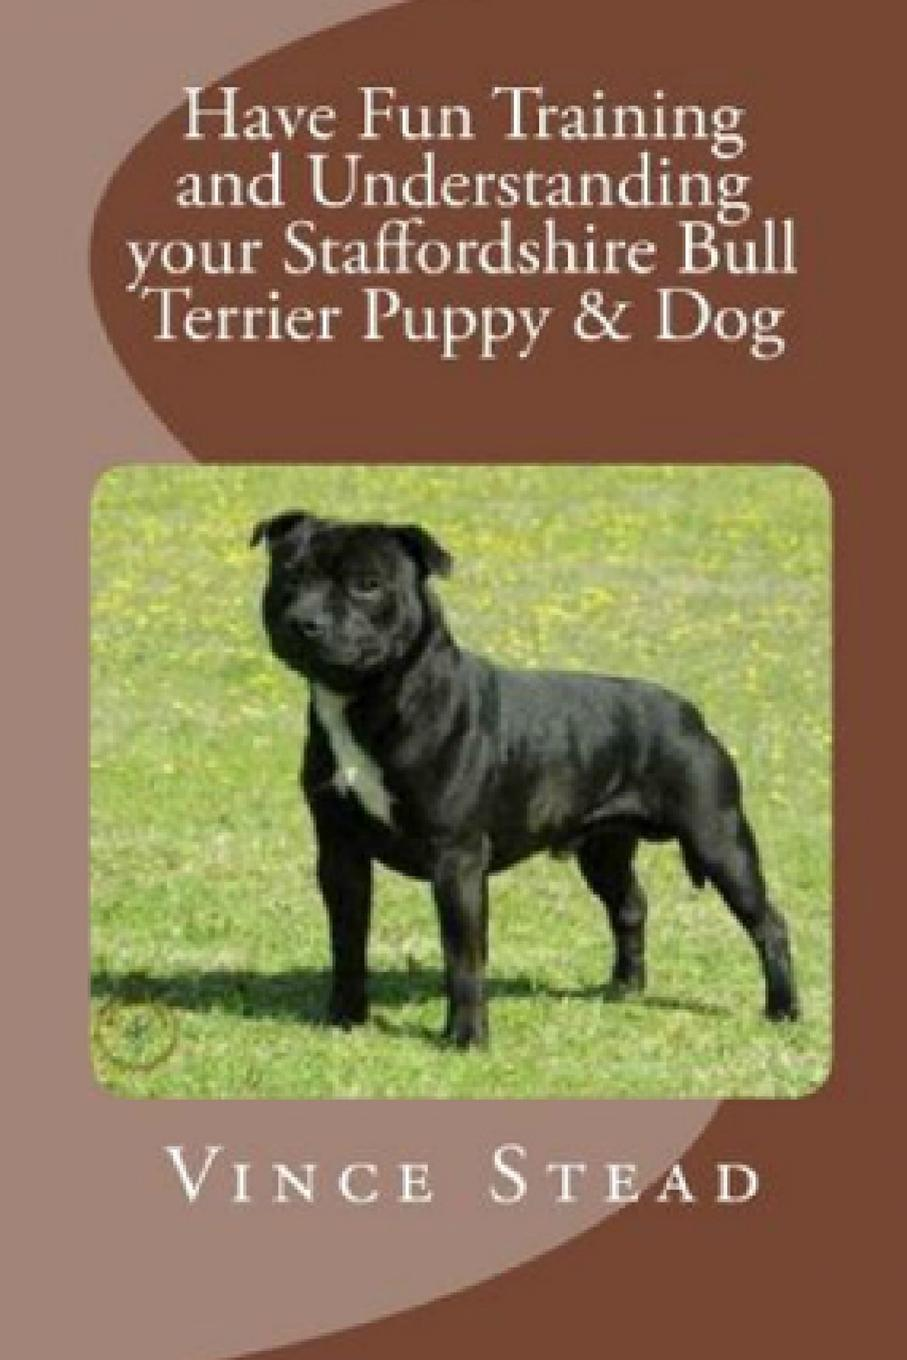 Vince Stead Have Fun Training and Understanding your Staffordshire Bull Terrier Puppy . Dog vince stead old english sheepdog puppy dog understanding and training